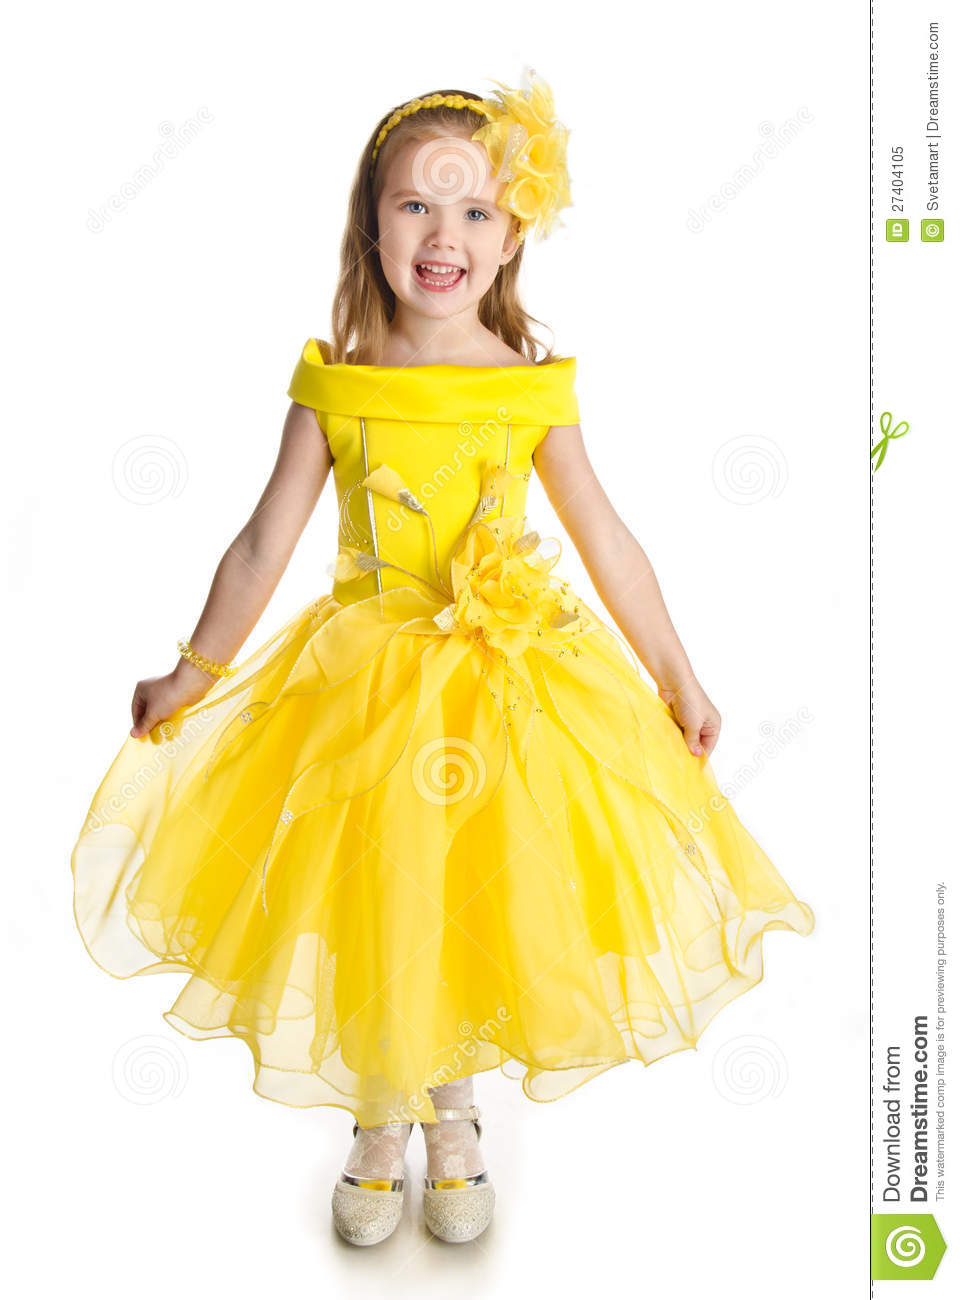 Portrait Of Singing Little Girl In Princess Dress Royalty Free ...